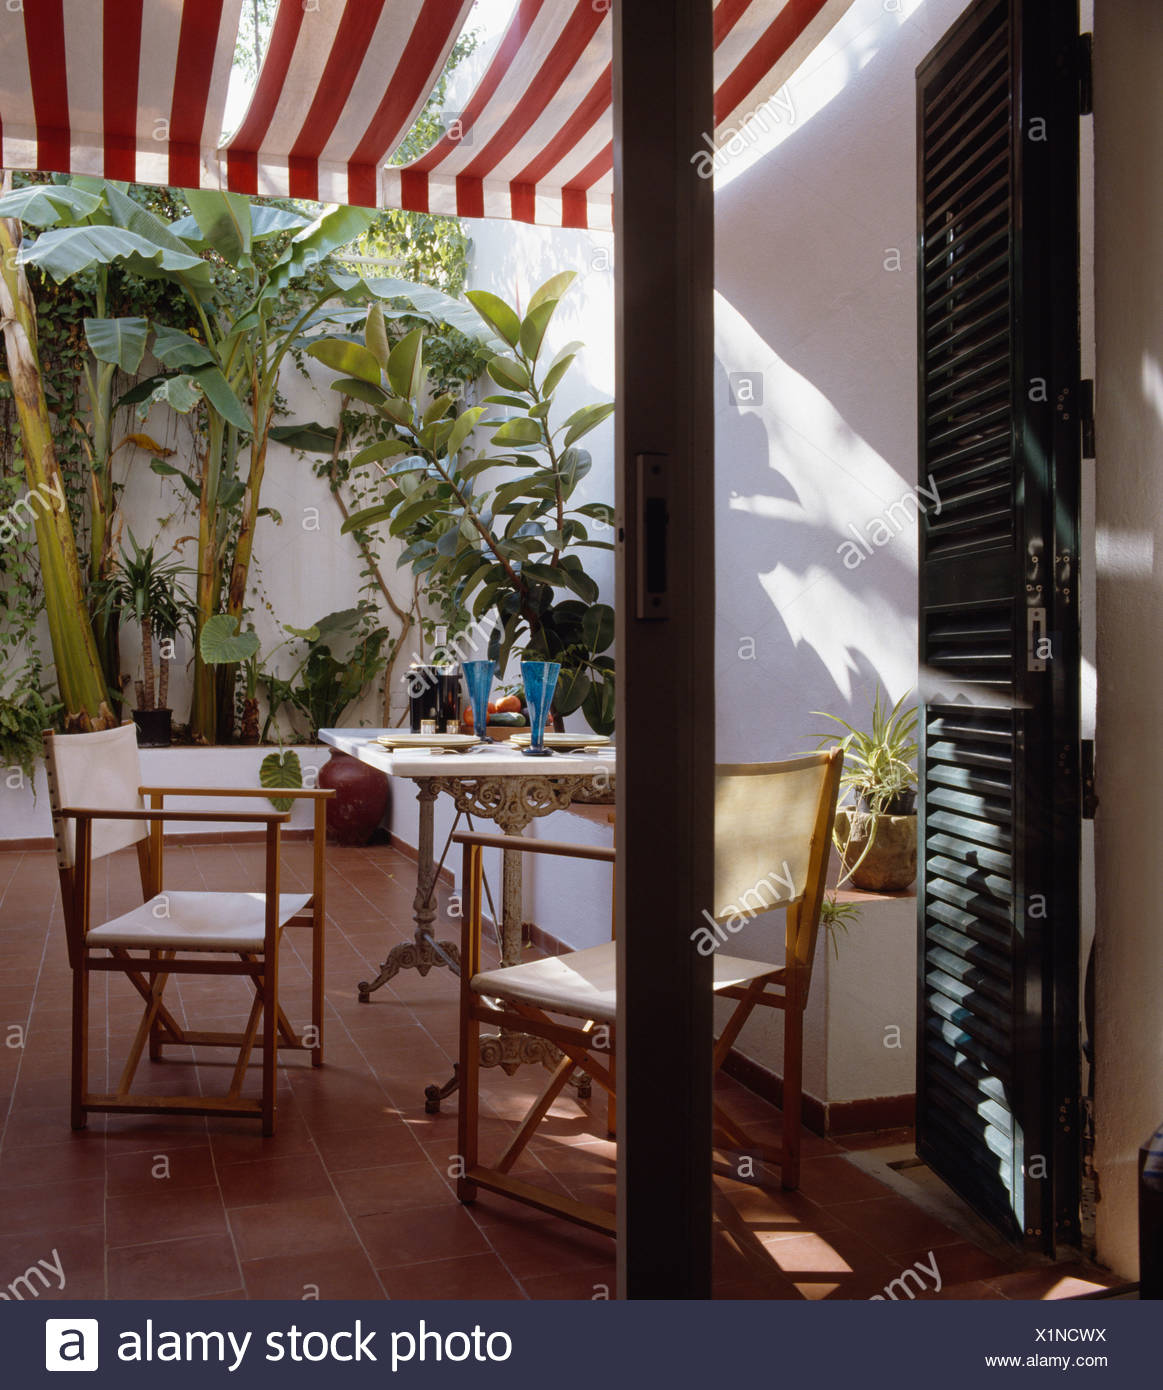 White Directors Chairs And Metal Table In Small Terracotta Tiled Inner Courtyard With Striped Awning